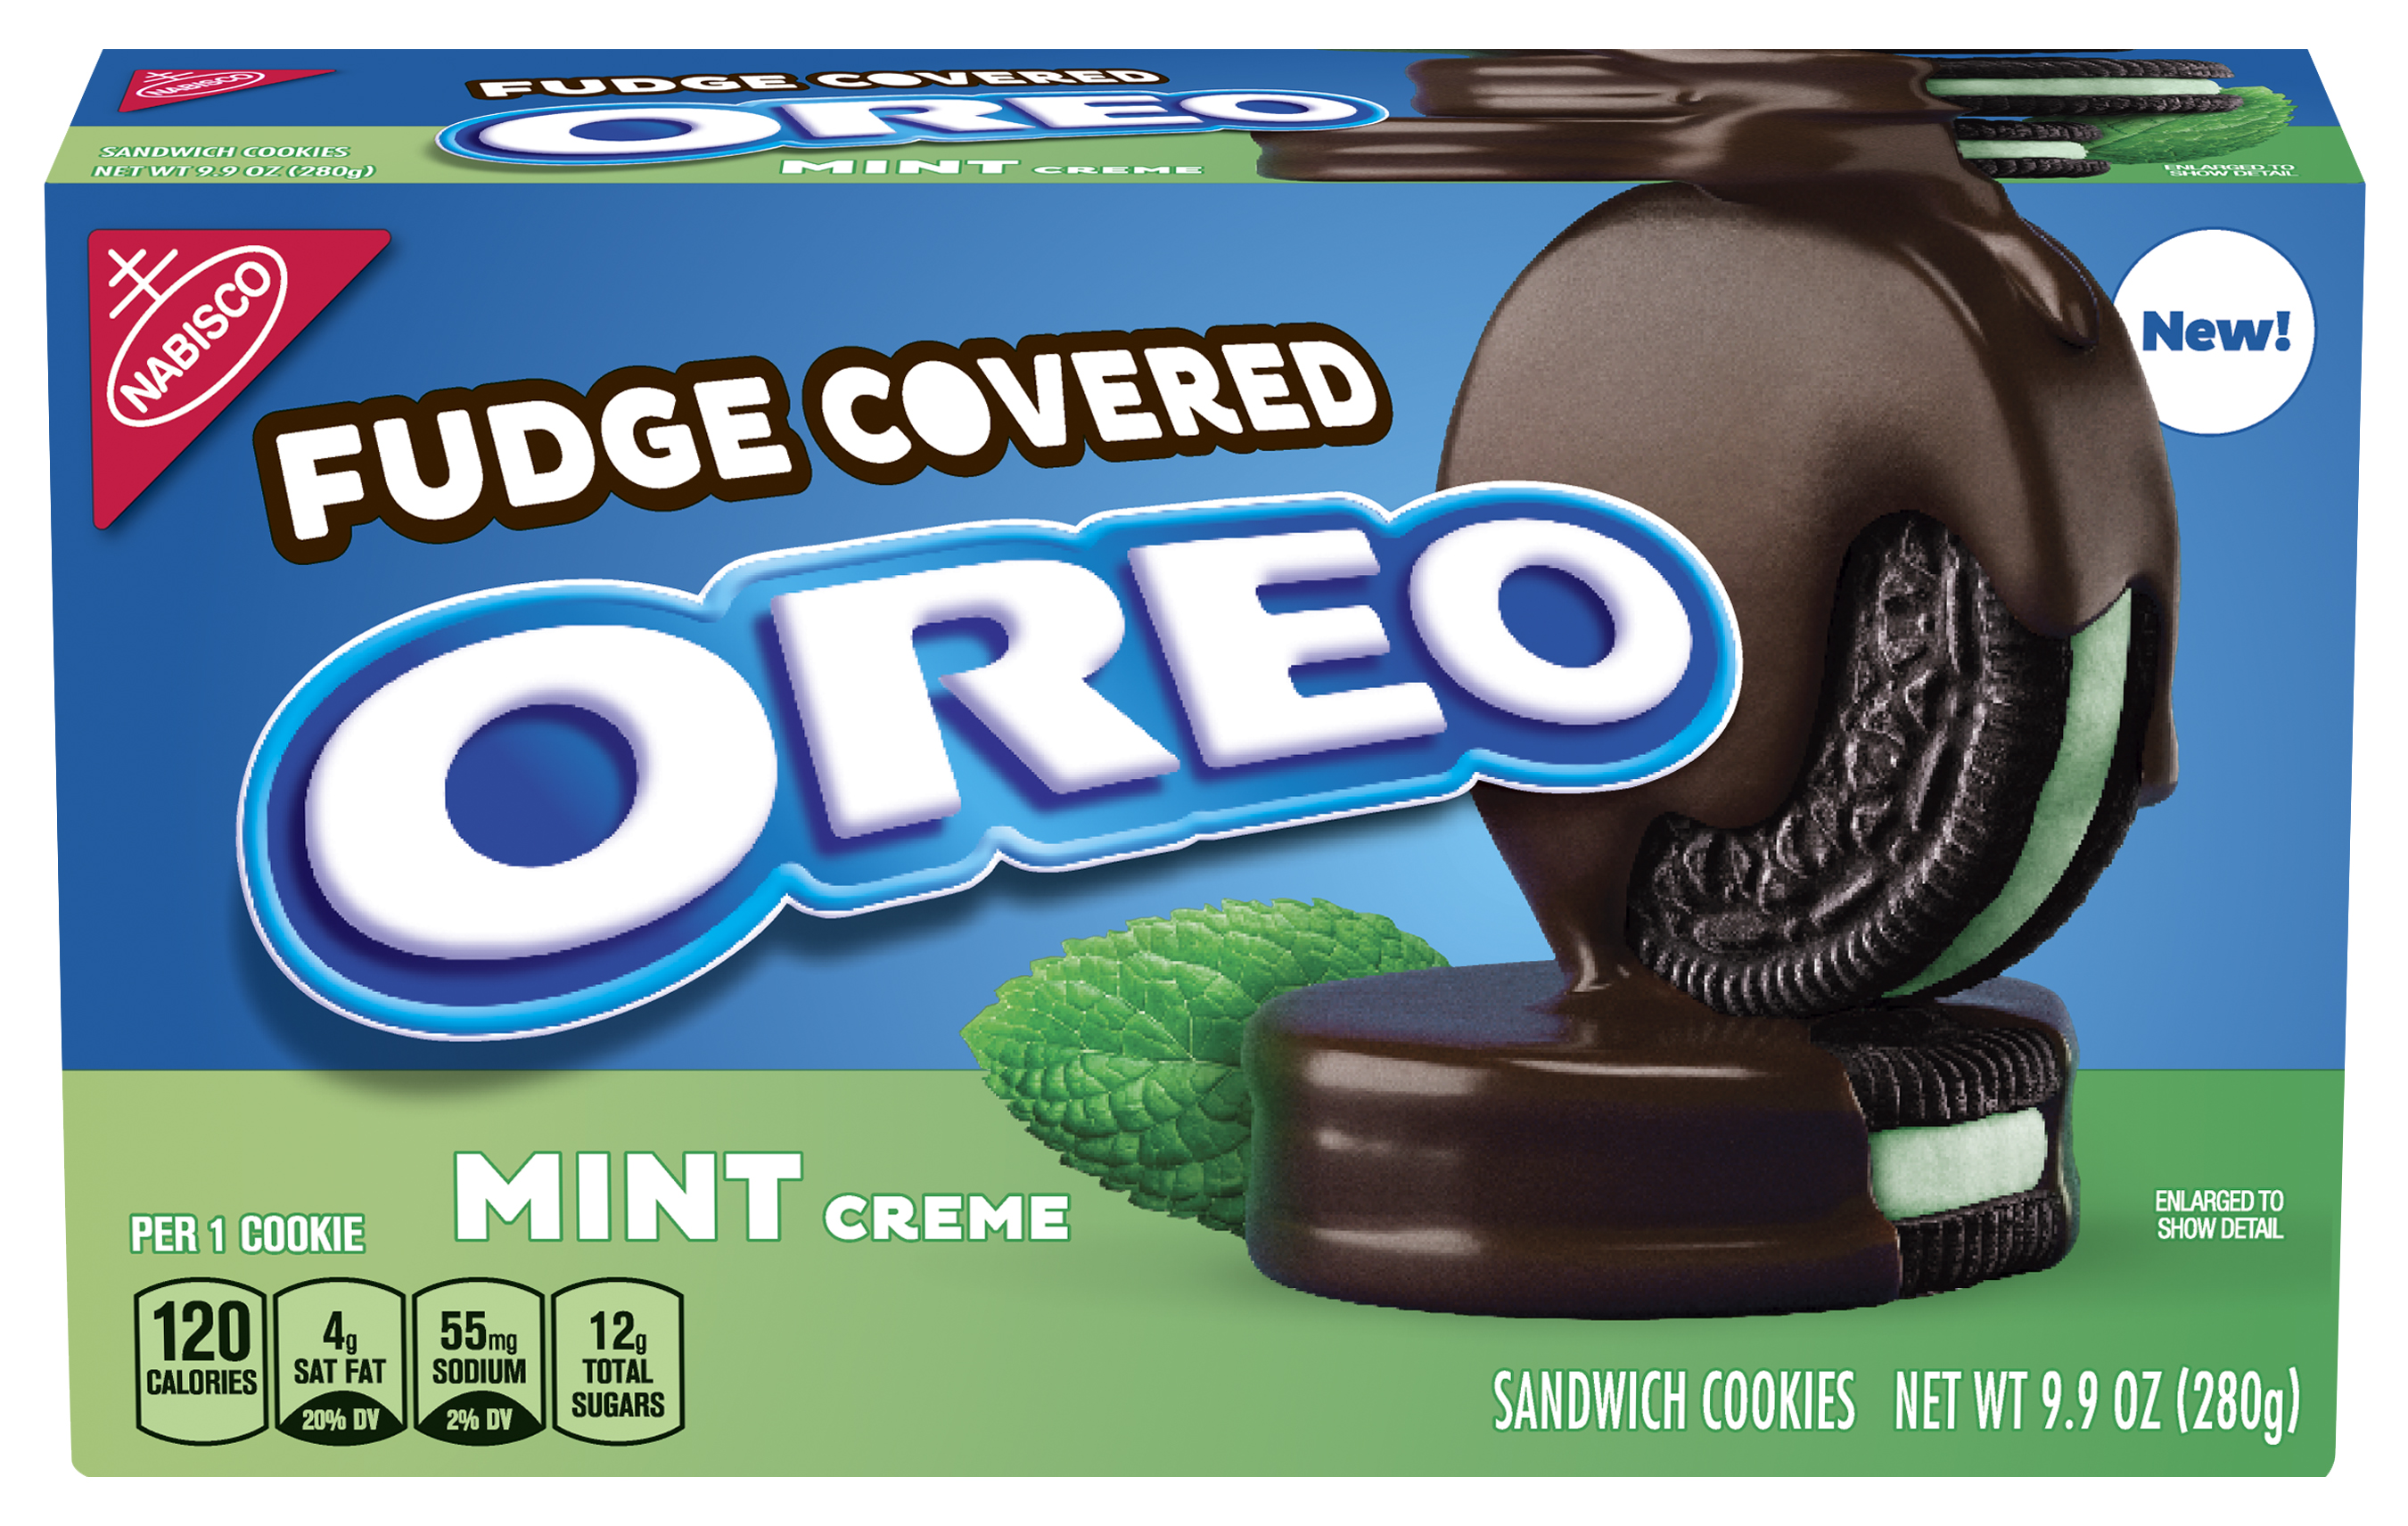 Fudge Covered Oreo Mint